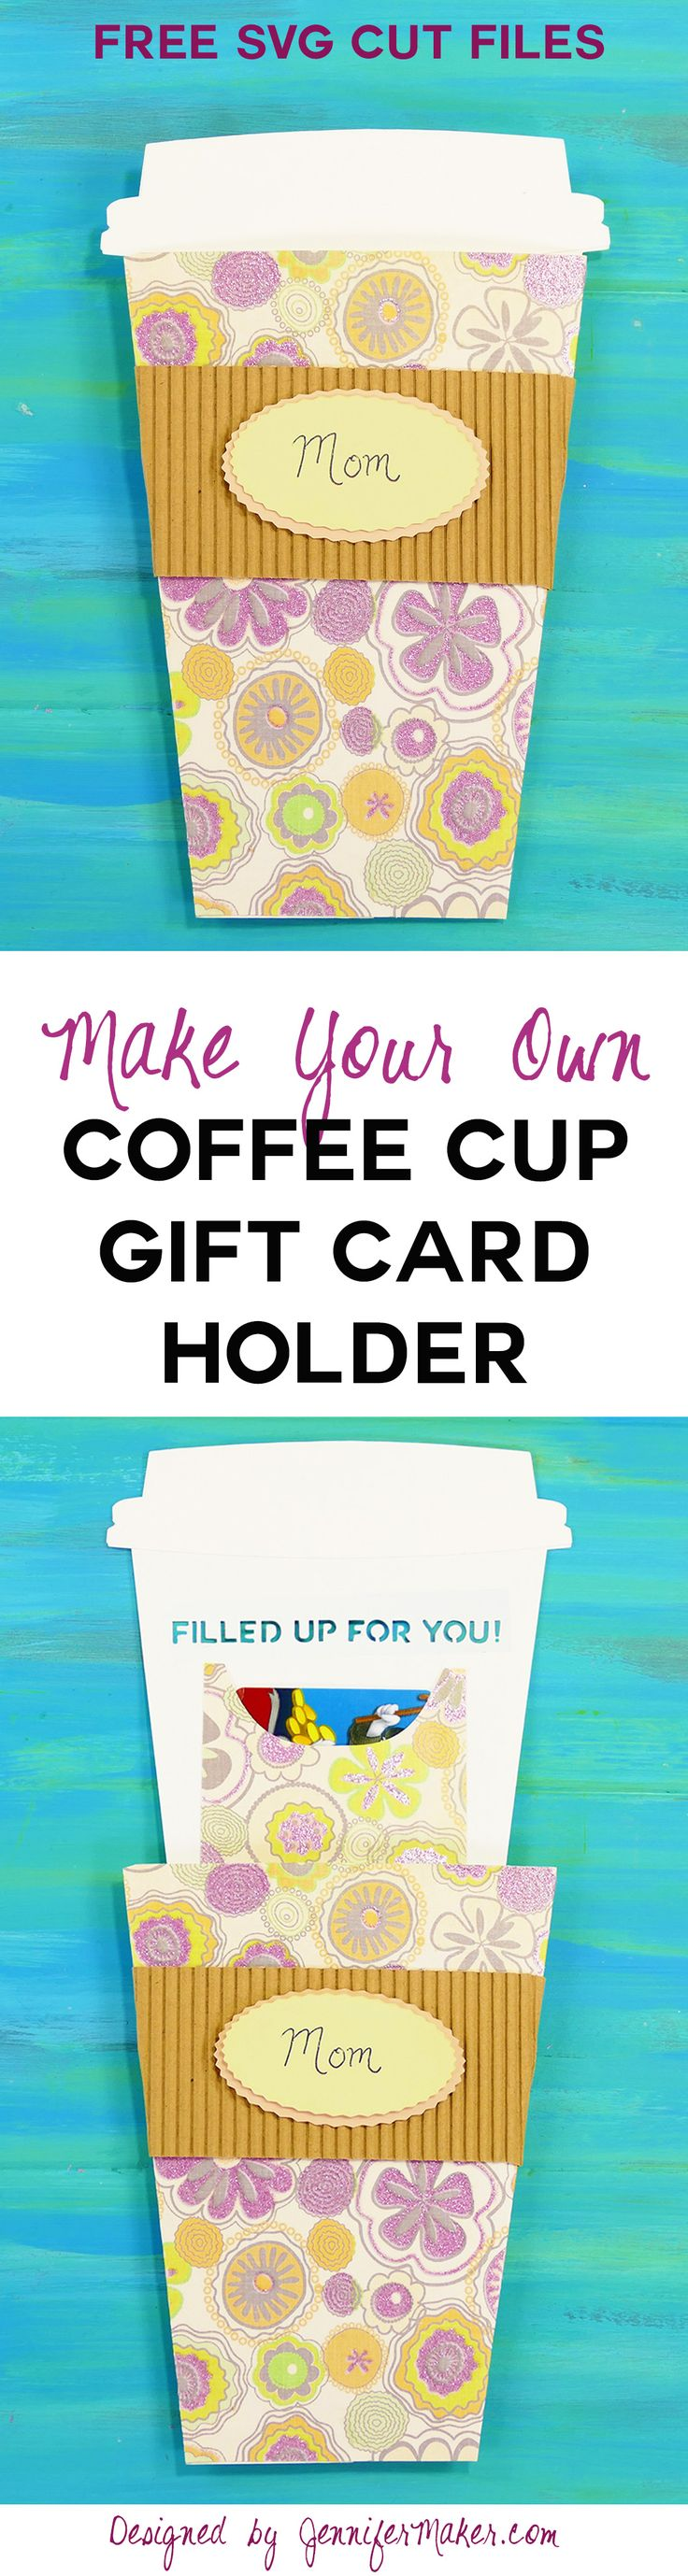 Take-Out Coffee Cup Gift Card Holder   Papercraft   Cricut Gift Card   Handmade Card   Starbucks Gift Card Holder